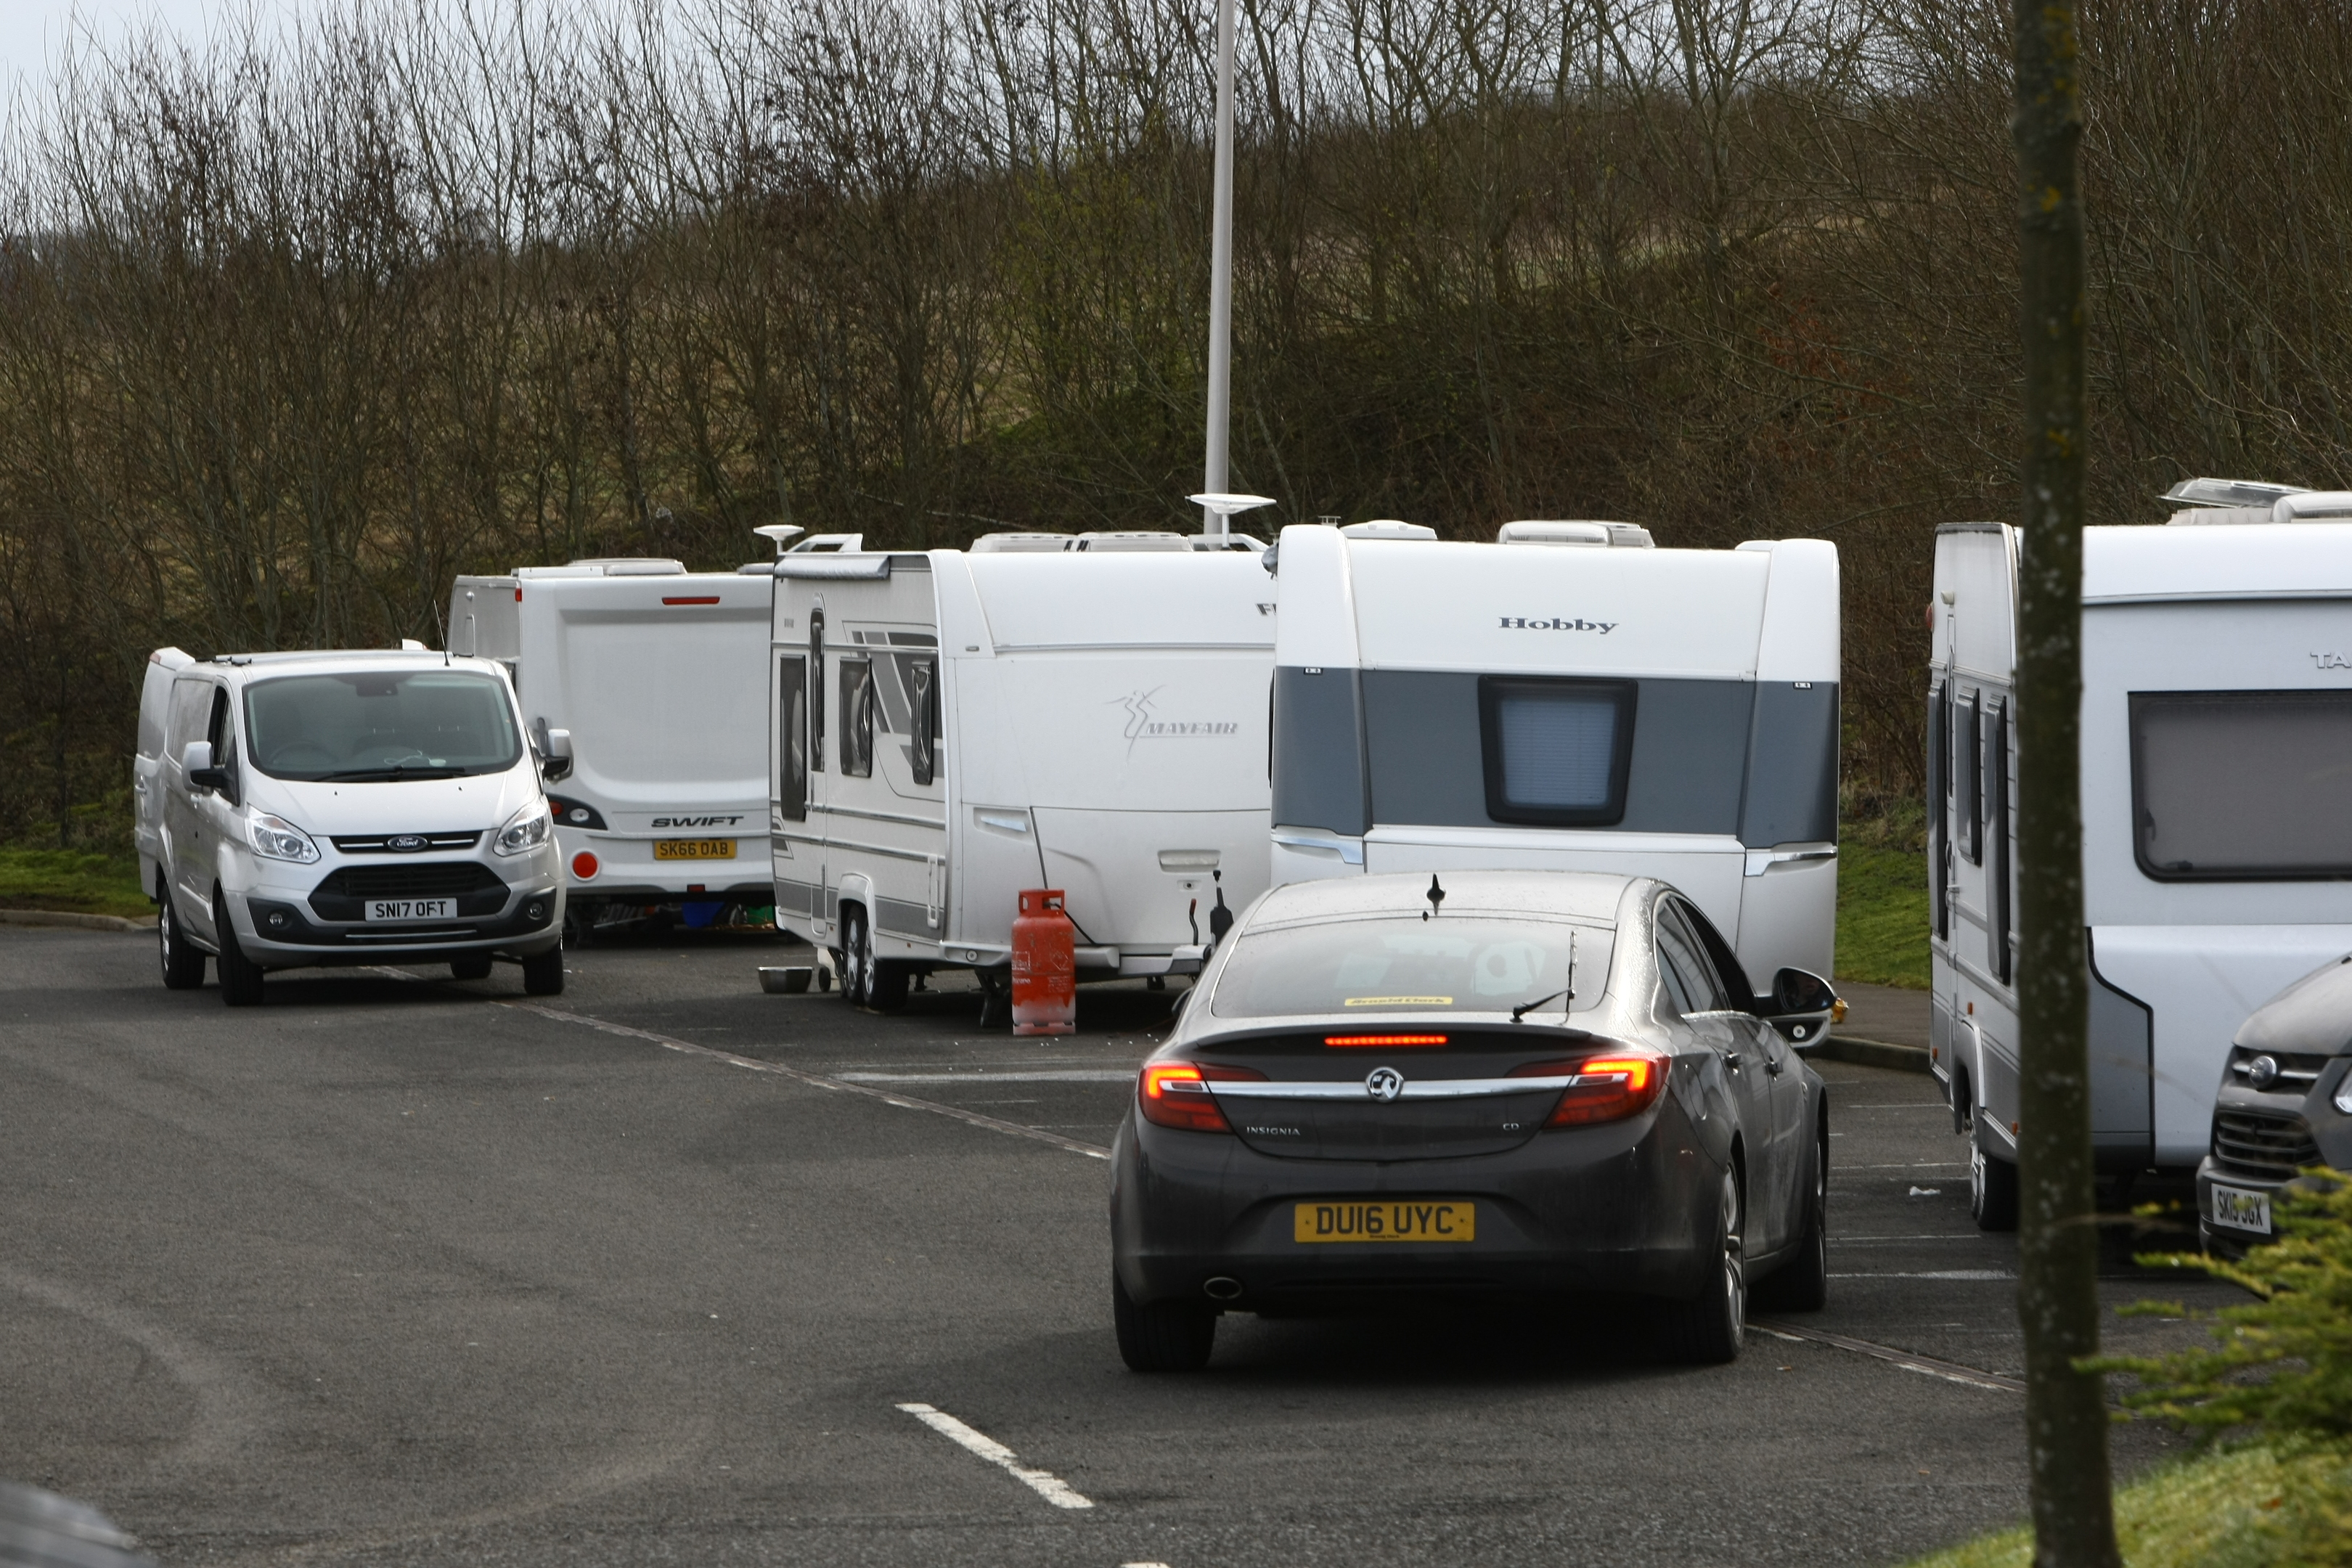 The caravans parked across dozens of spaces at Broxden park and Ride.